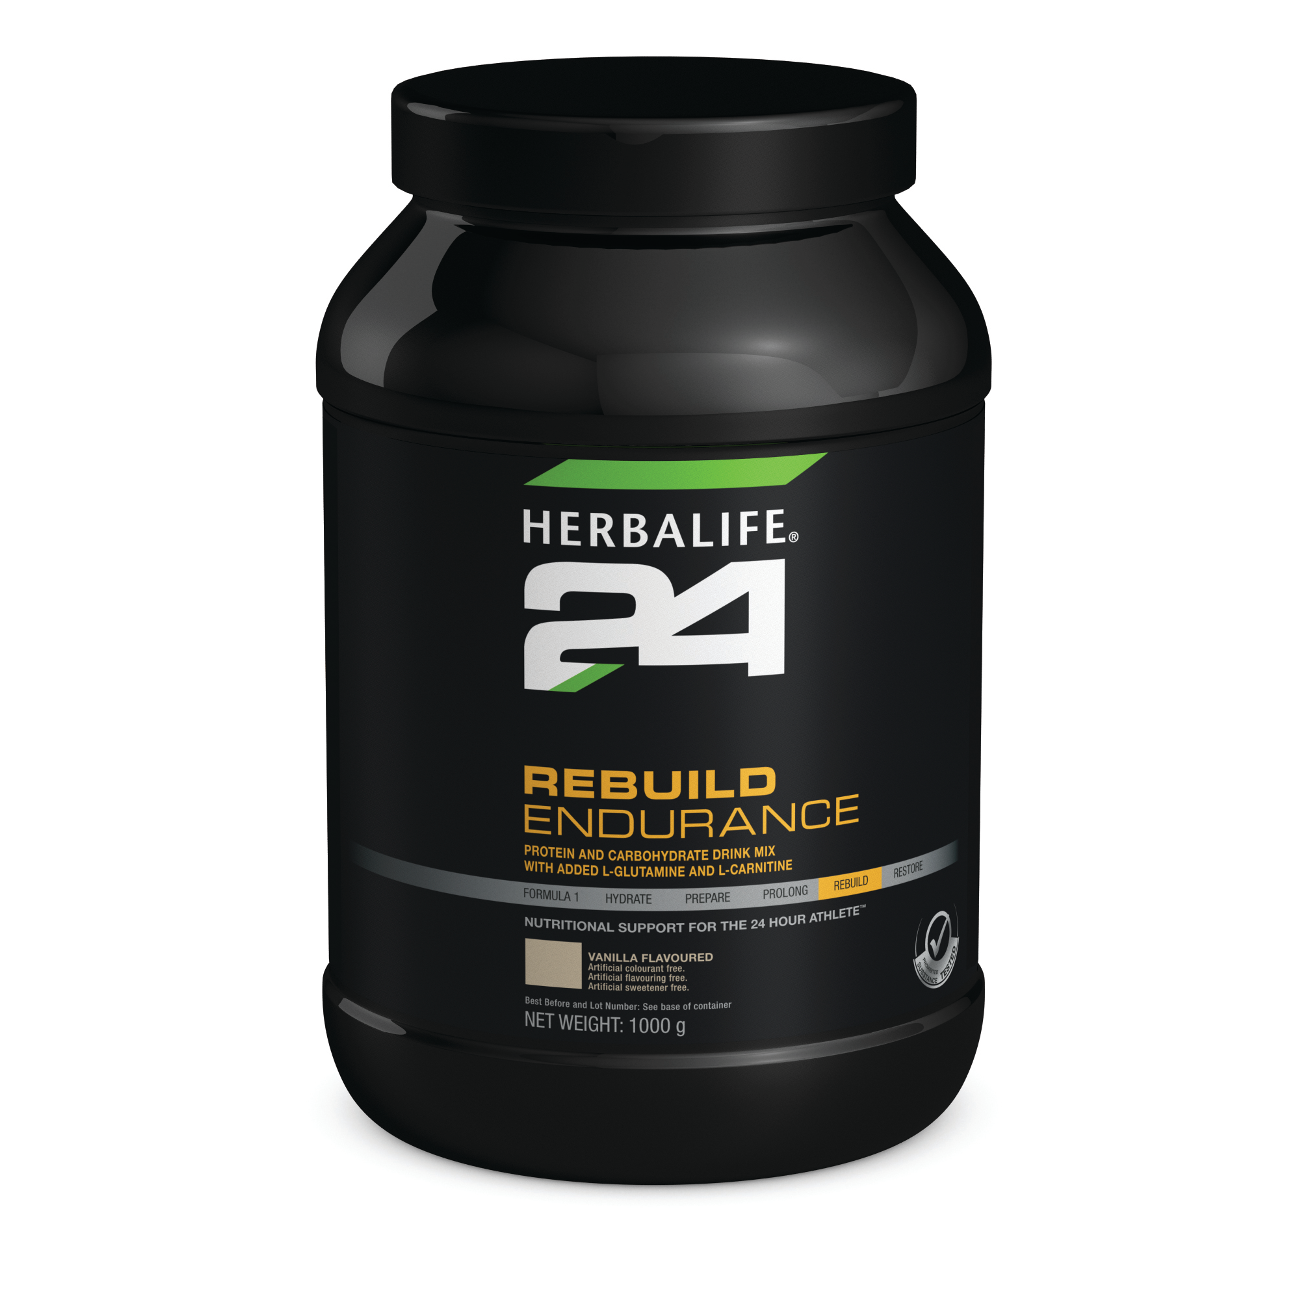 Herbalife24® Rebuild Endurance Protein-Carbohydrate Drink Mix Vanilla Flavoured product shot